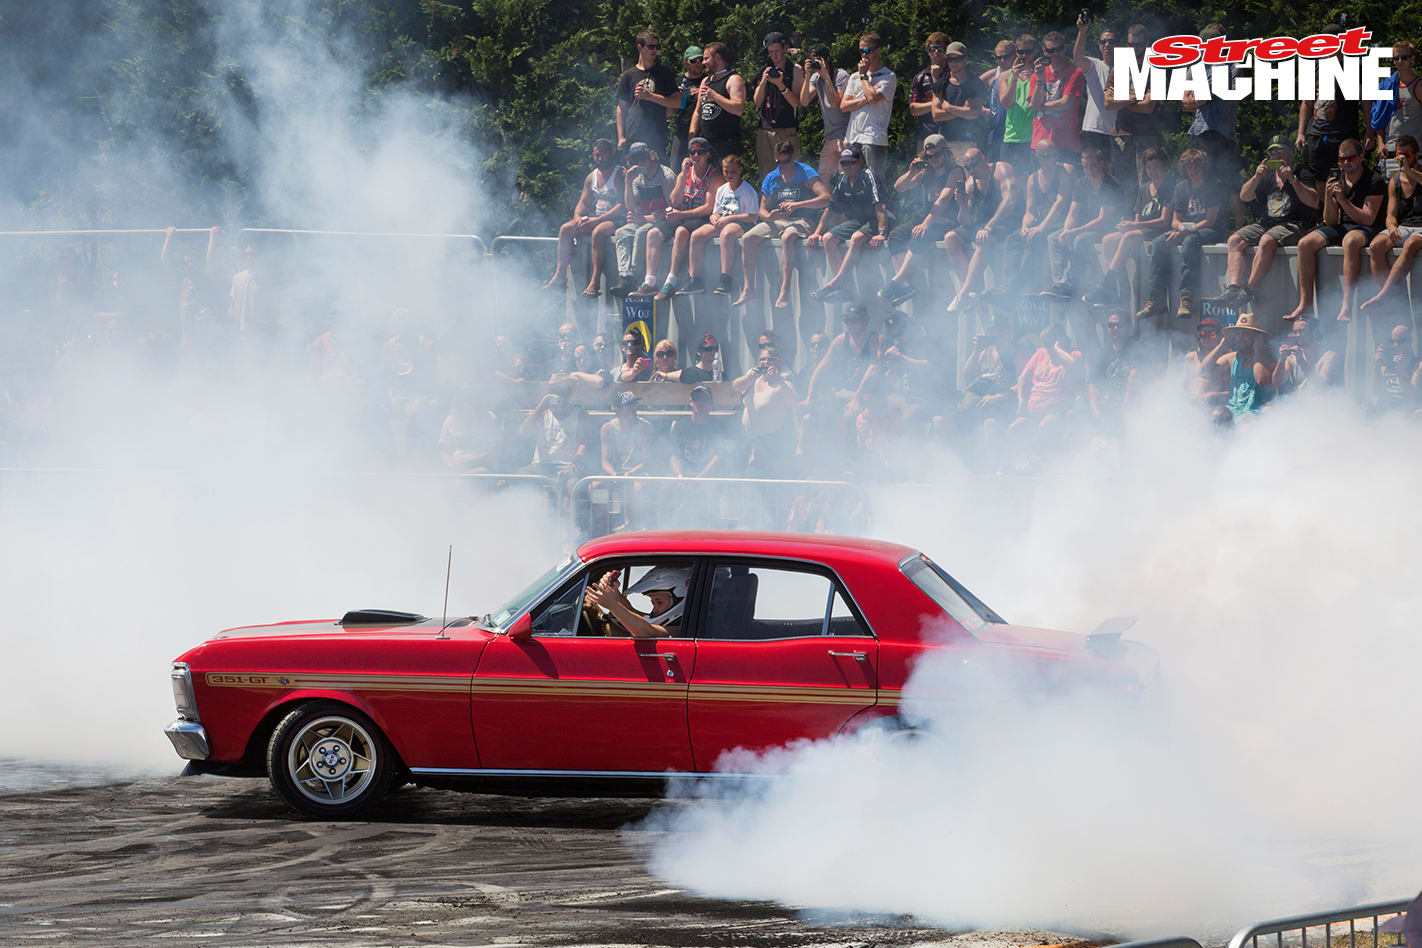 Ford XW 351 GT Burnout